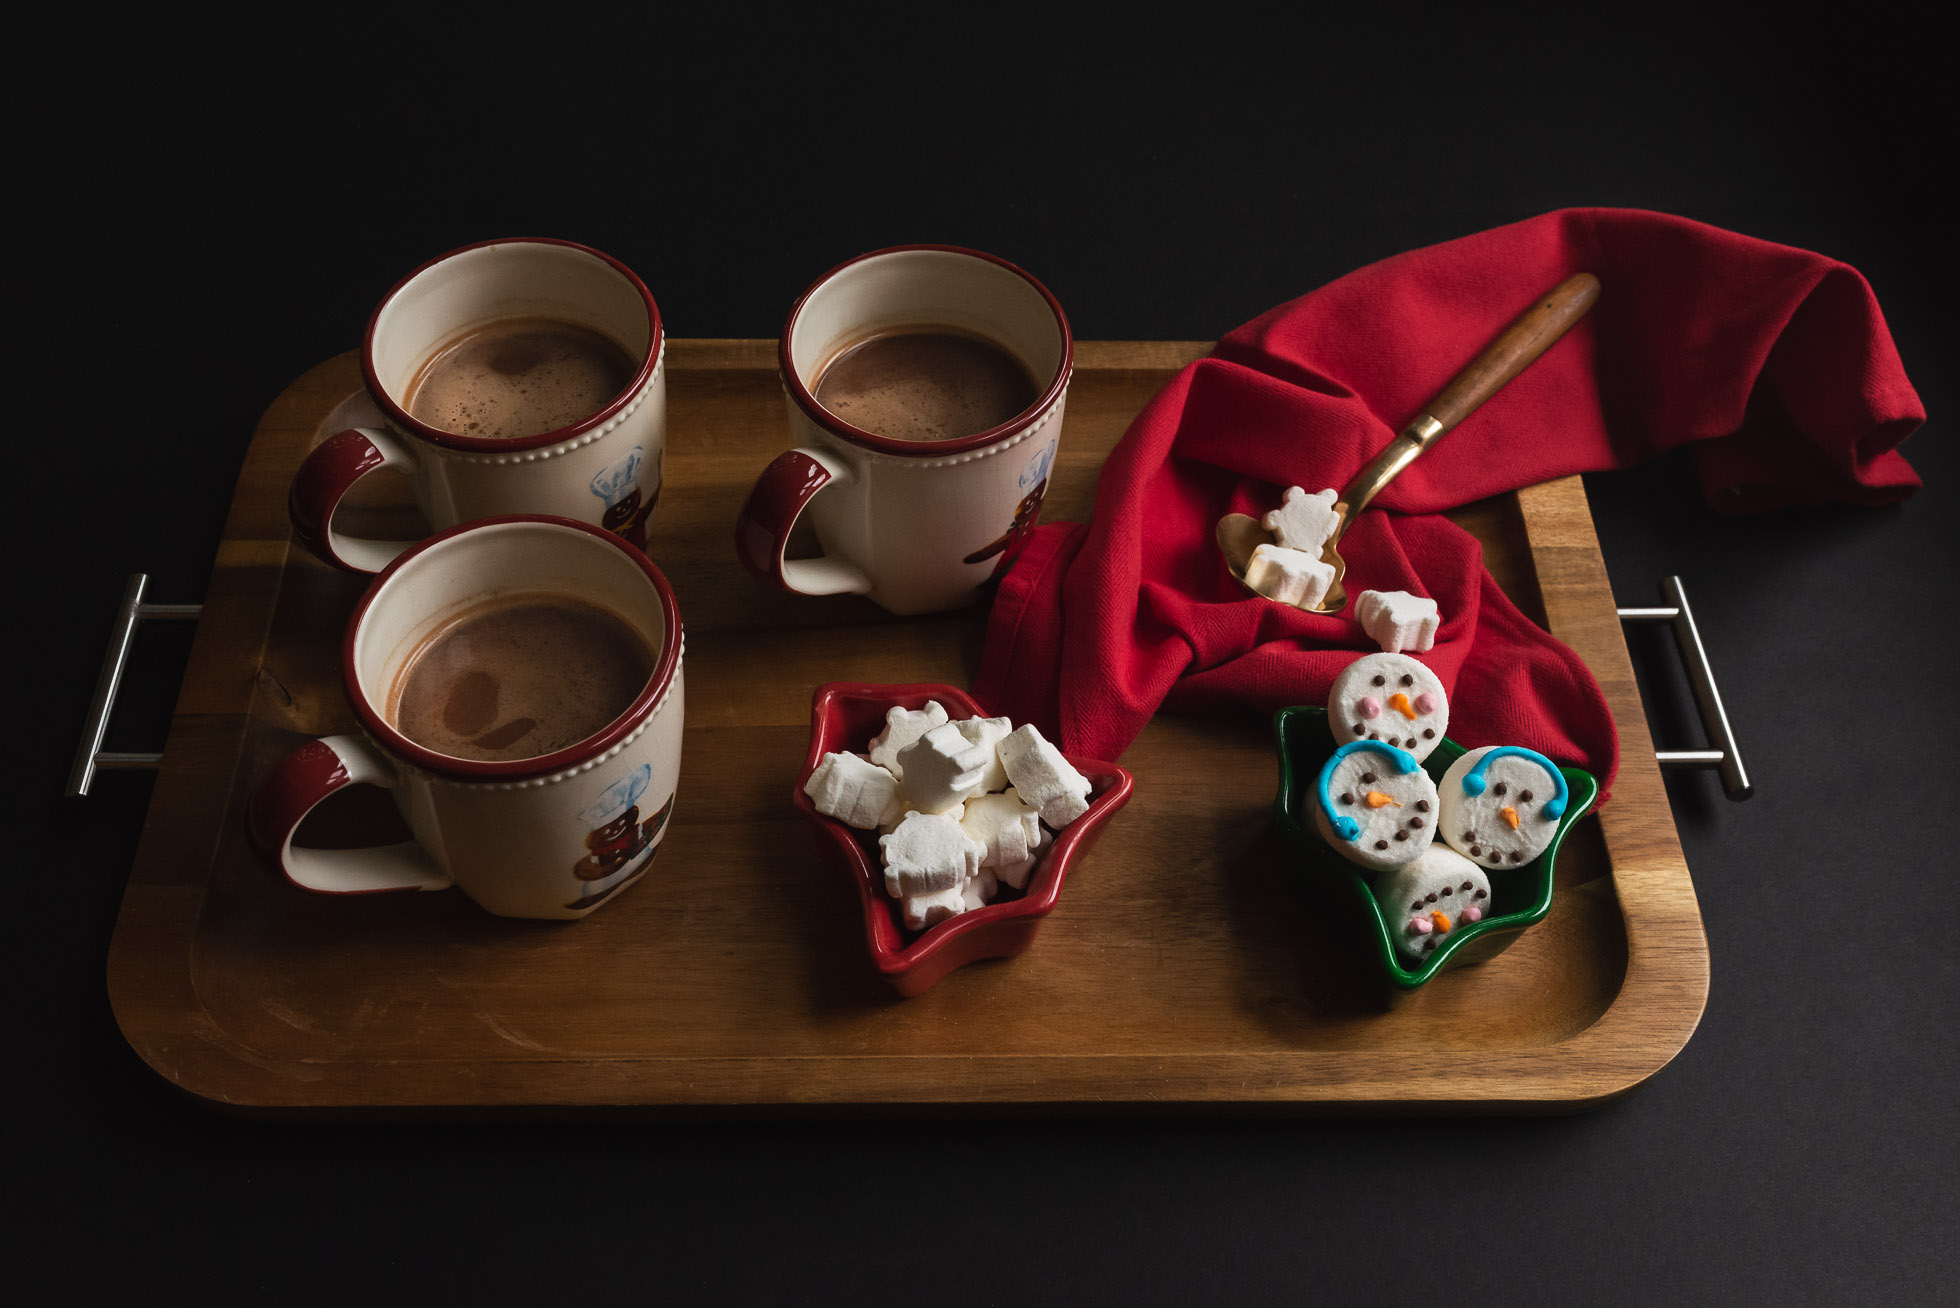 still-life-of-hot-chocolate-mugs-on-tray-with-marshmallows